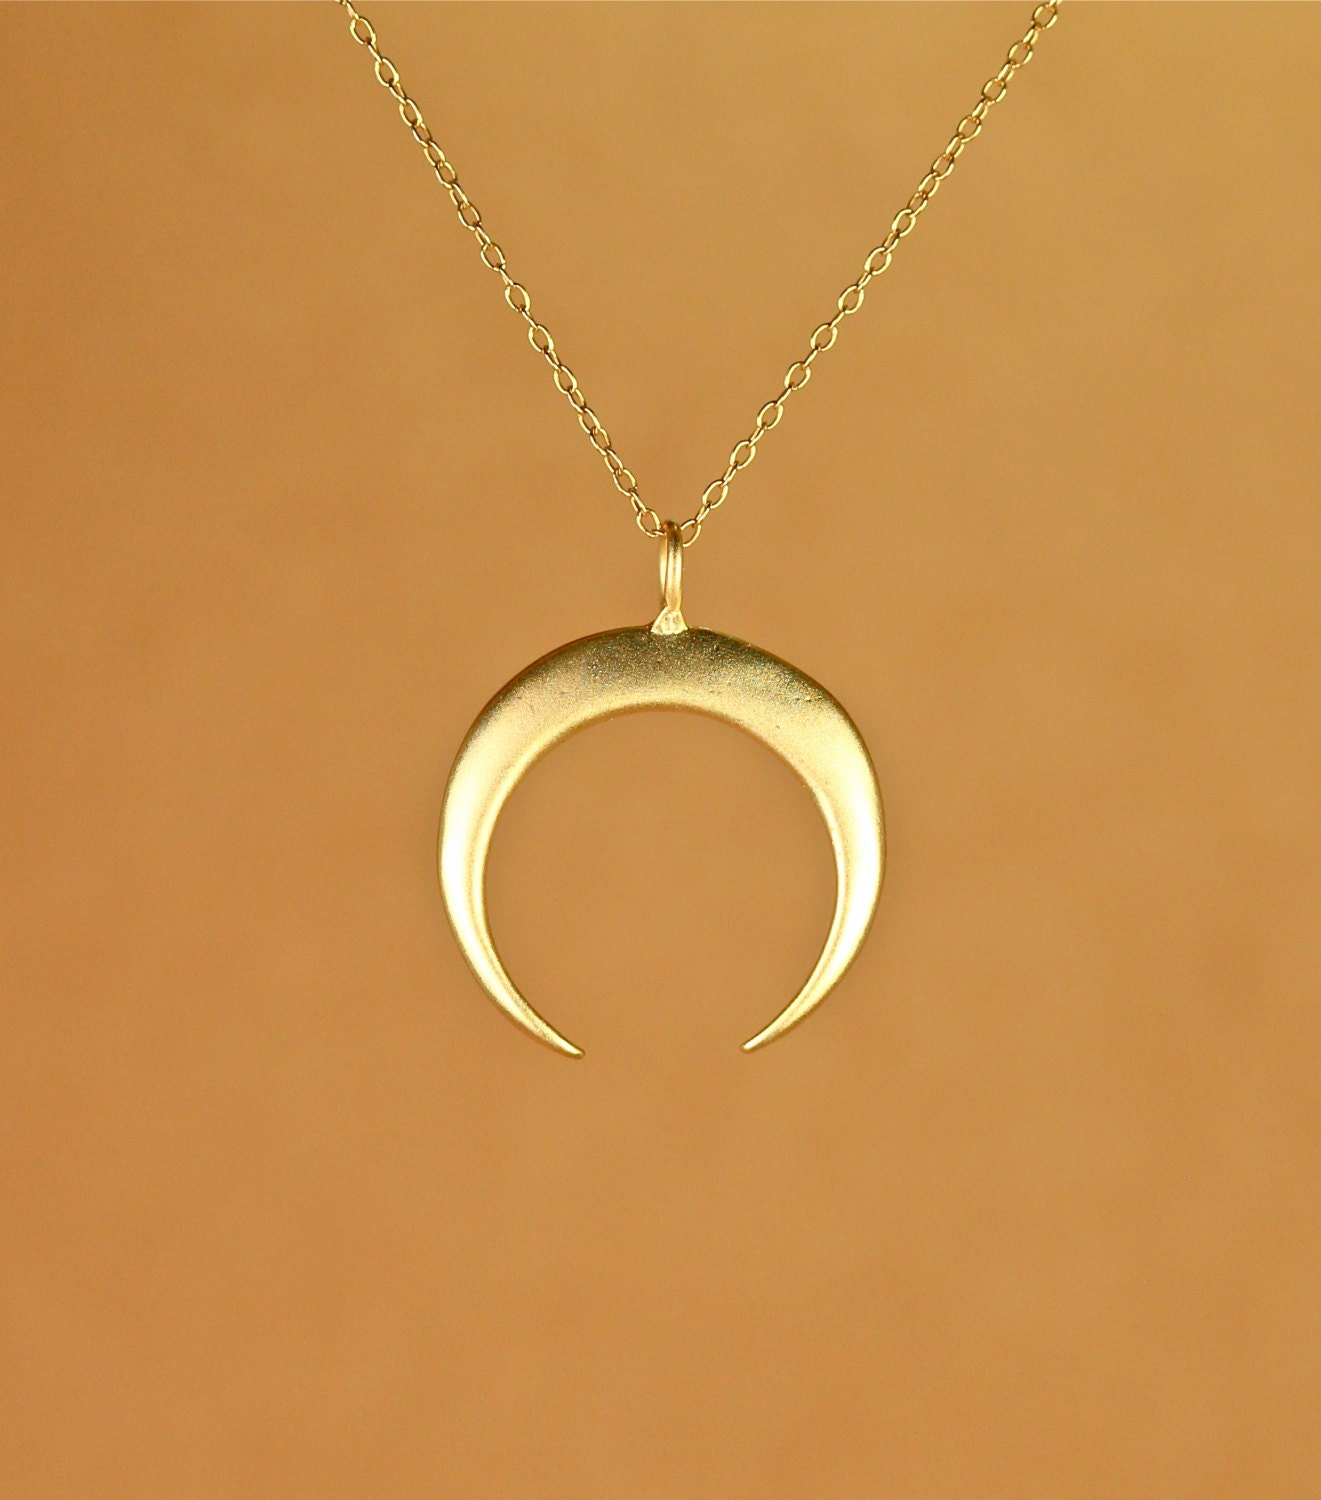 necklacestar product pendant crescent fullxfull necklacemoon vertical necklacehorizontal il star moon silver necklace pendantgold gold